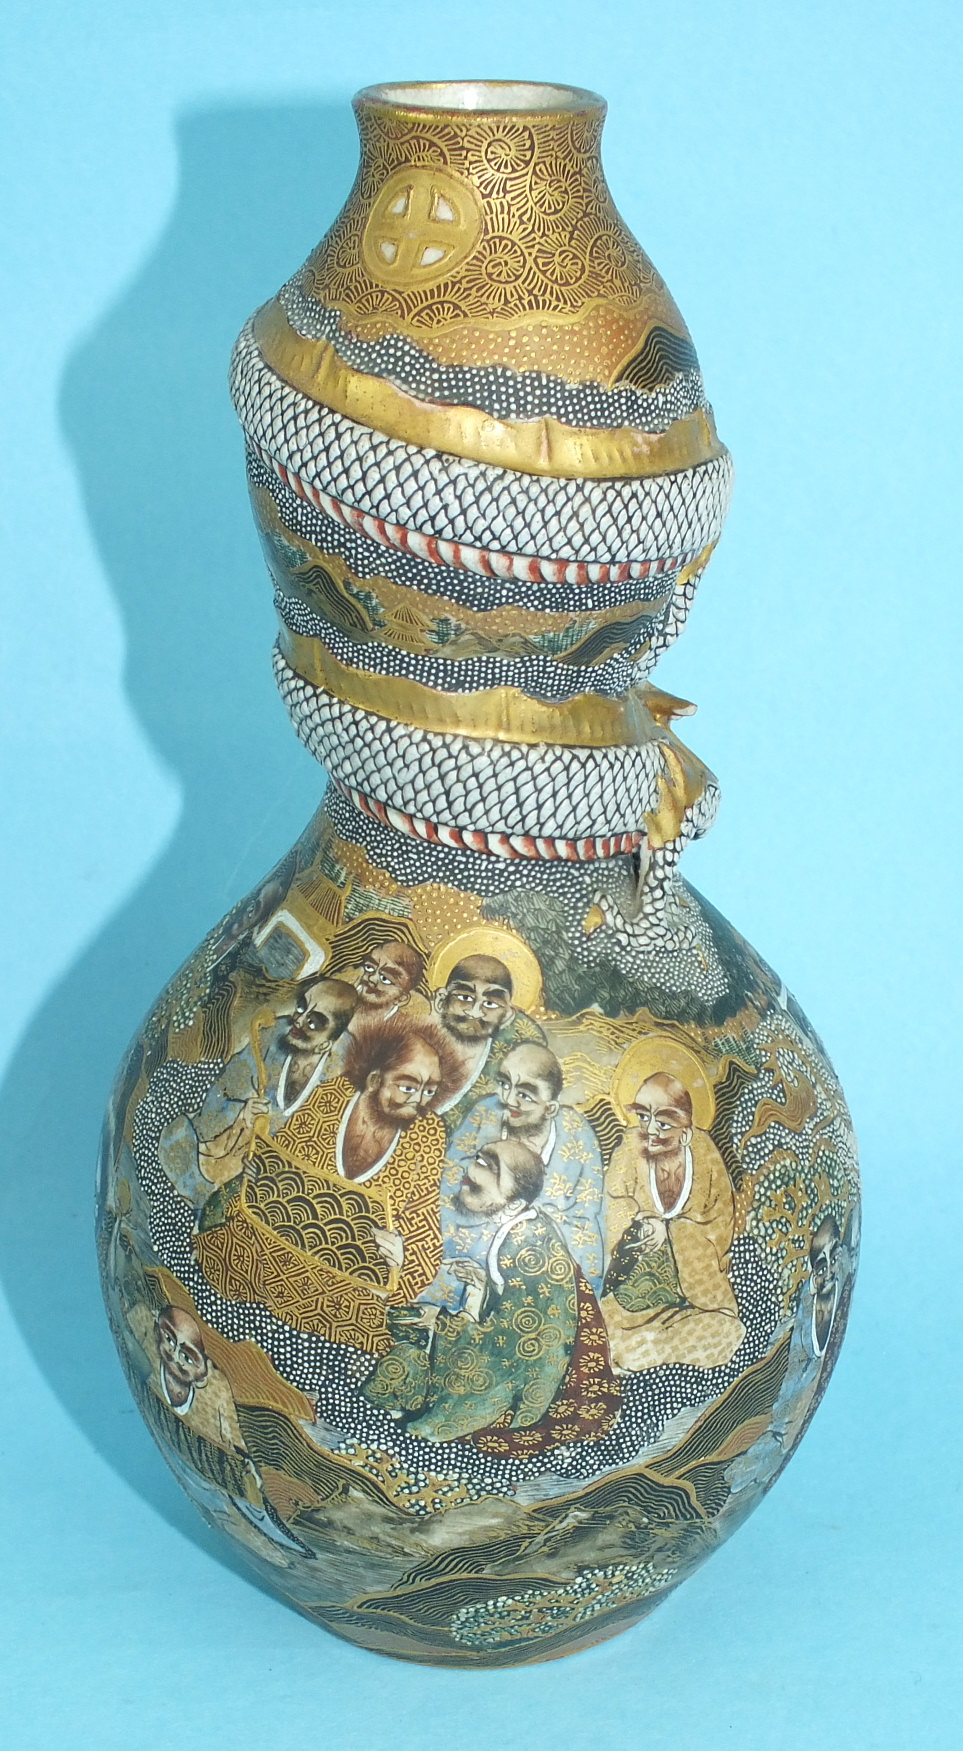 A 19th century Japanese Satsuma double-gourd-shaped vase decorated with Immortals and other figures, - Image 2 of 3